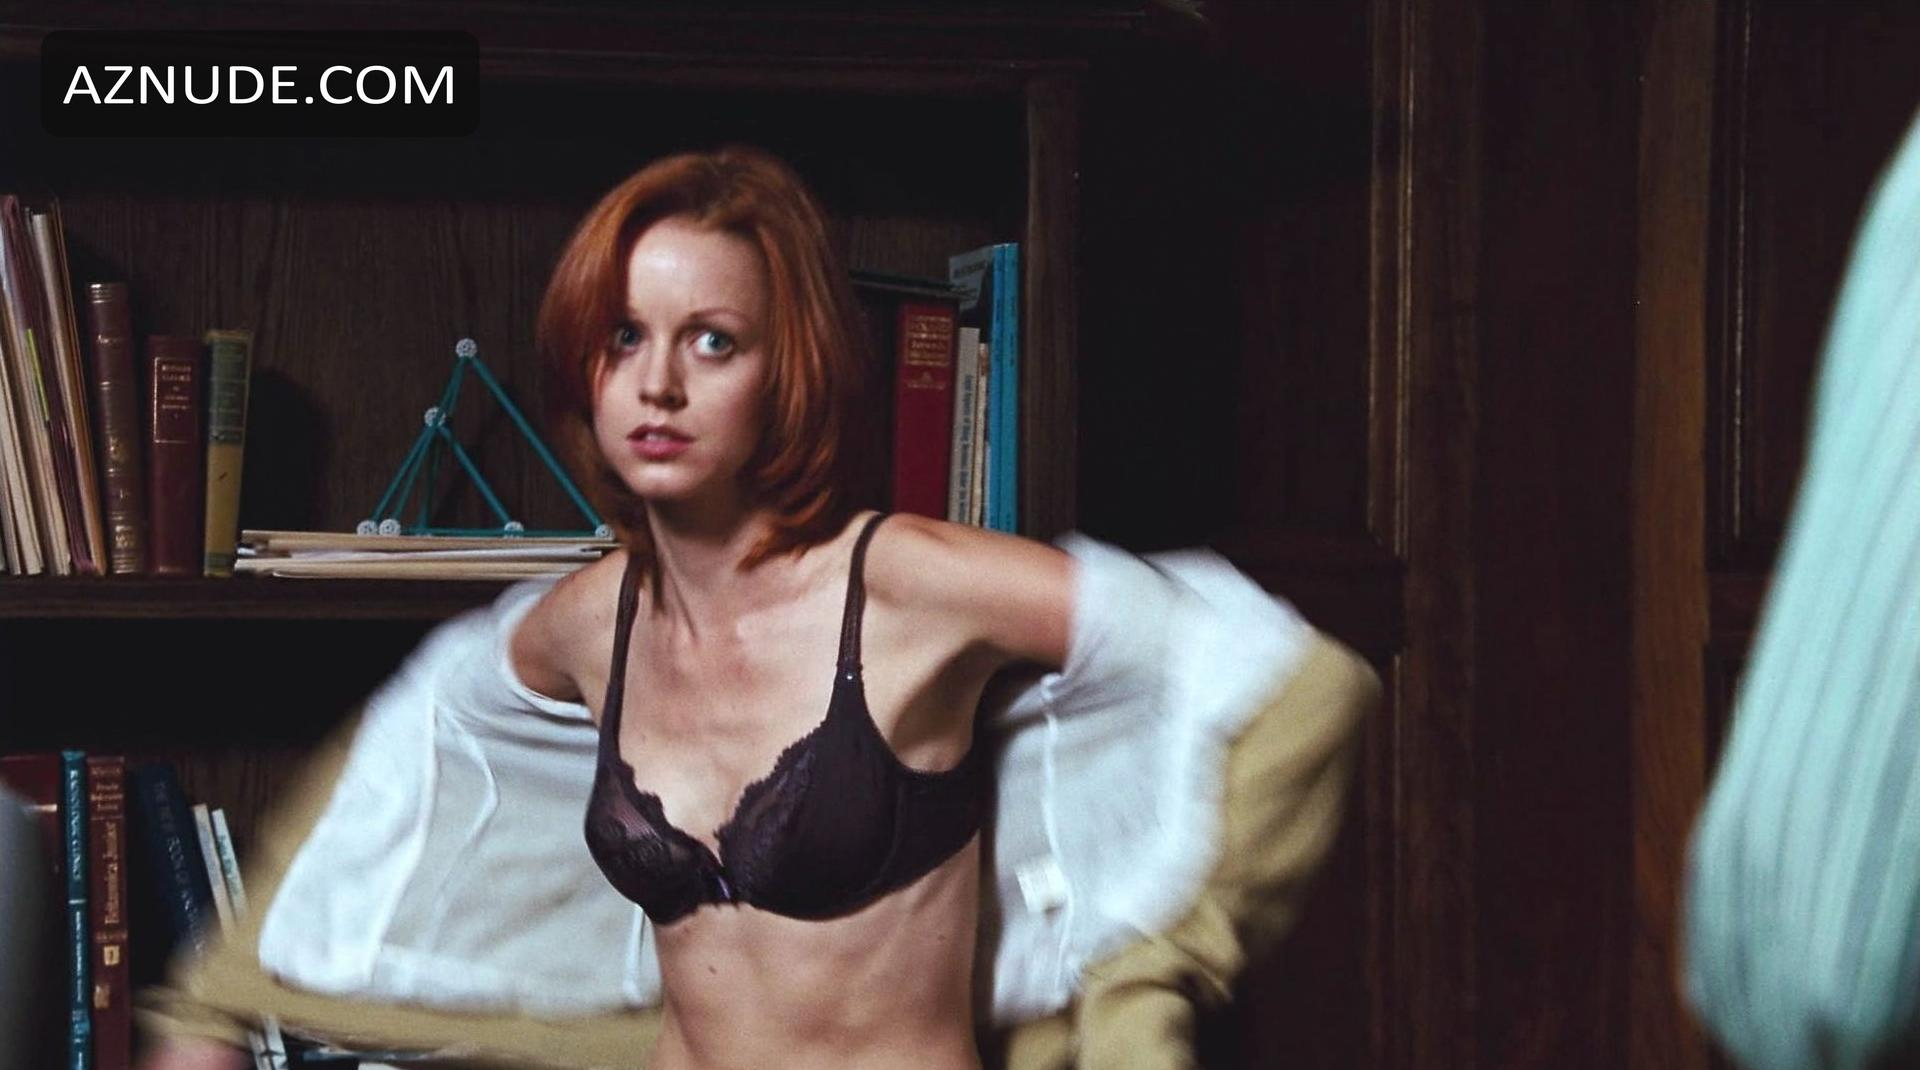 Lindy booth fake nude